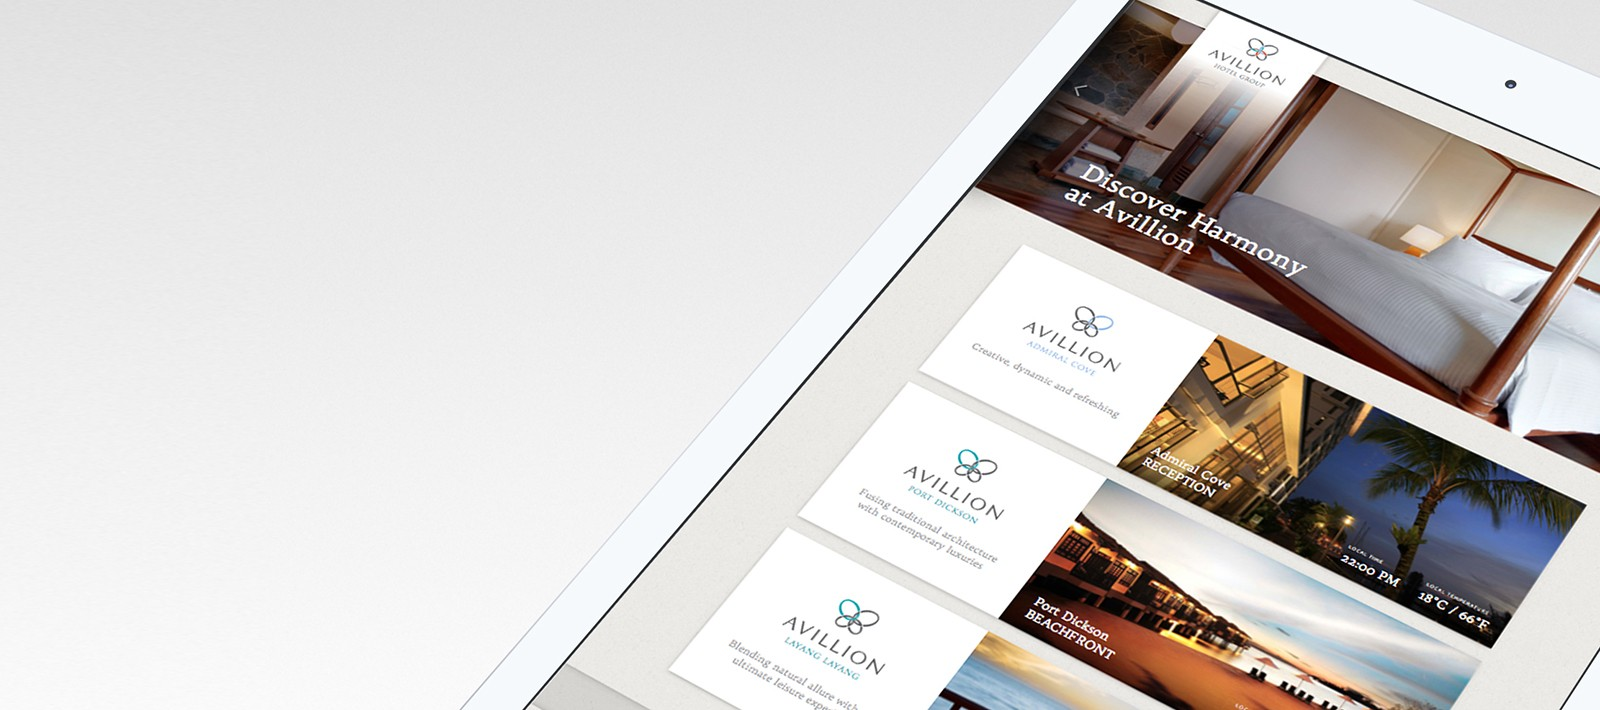 App development for a hospitality brand